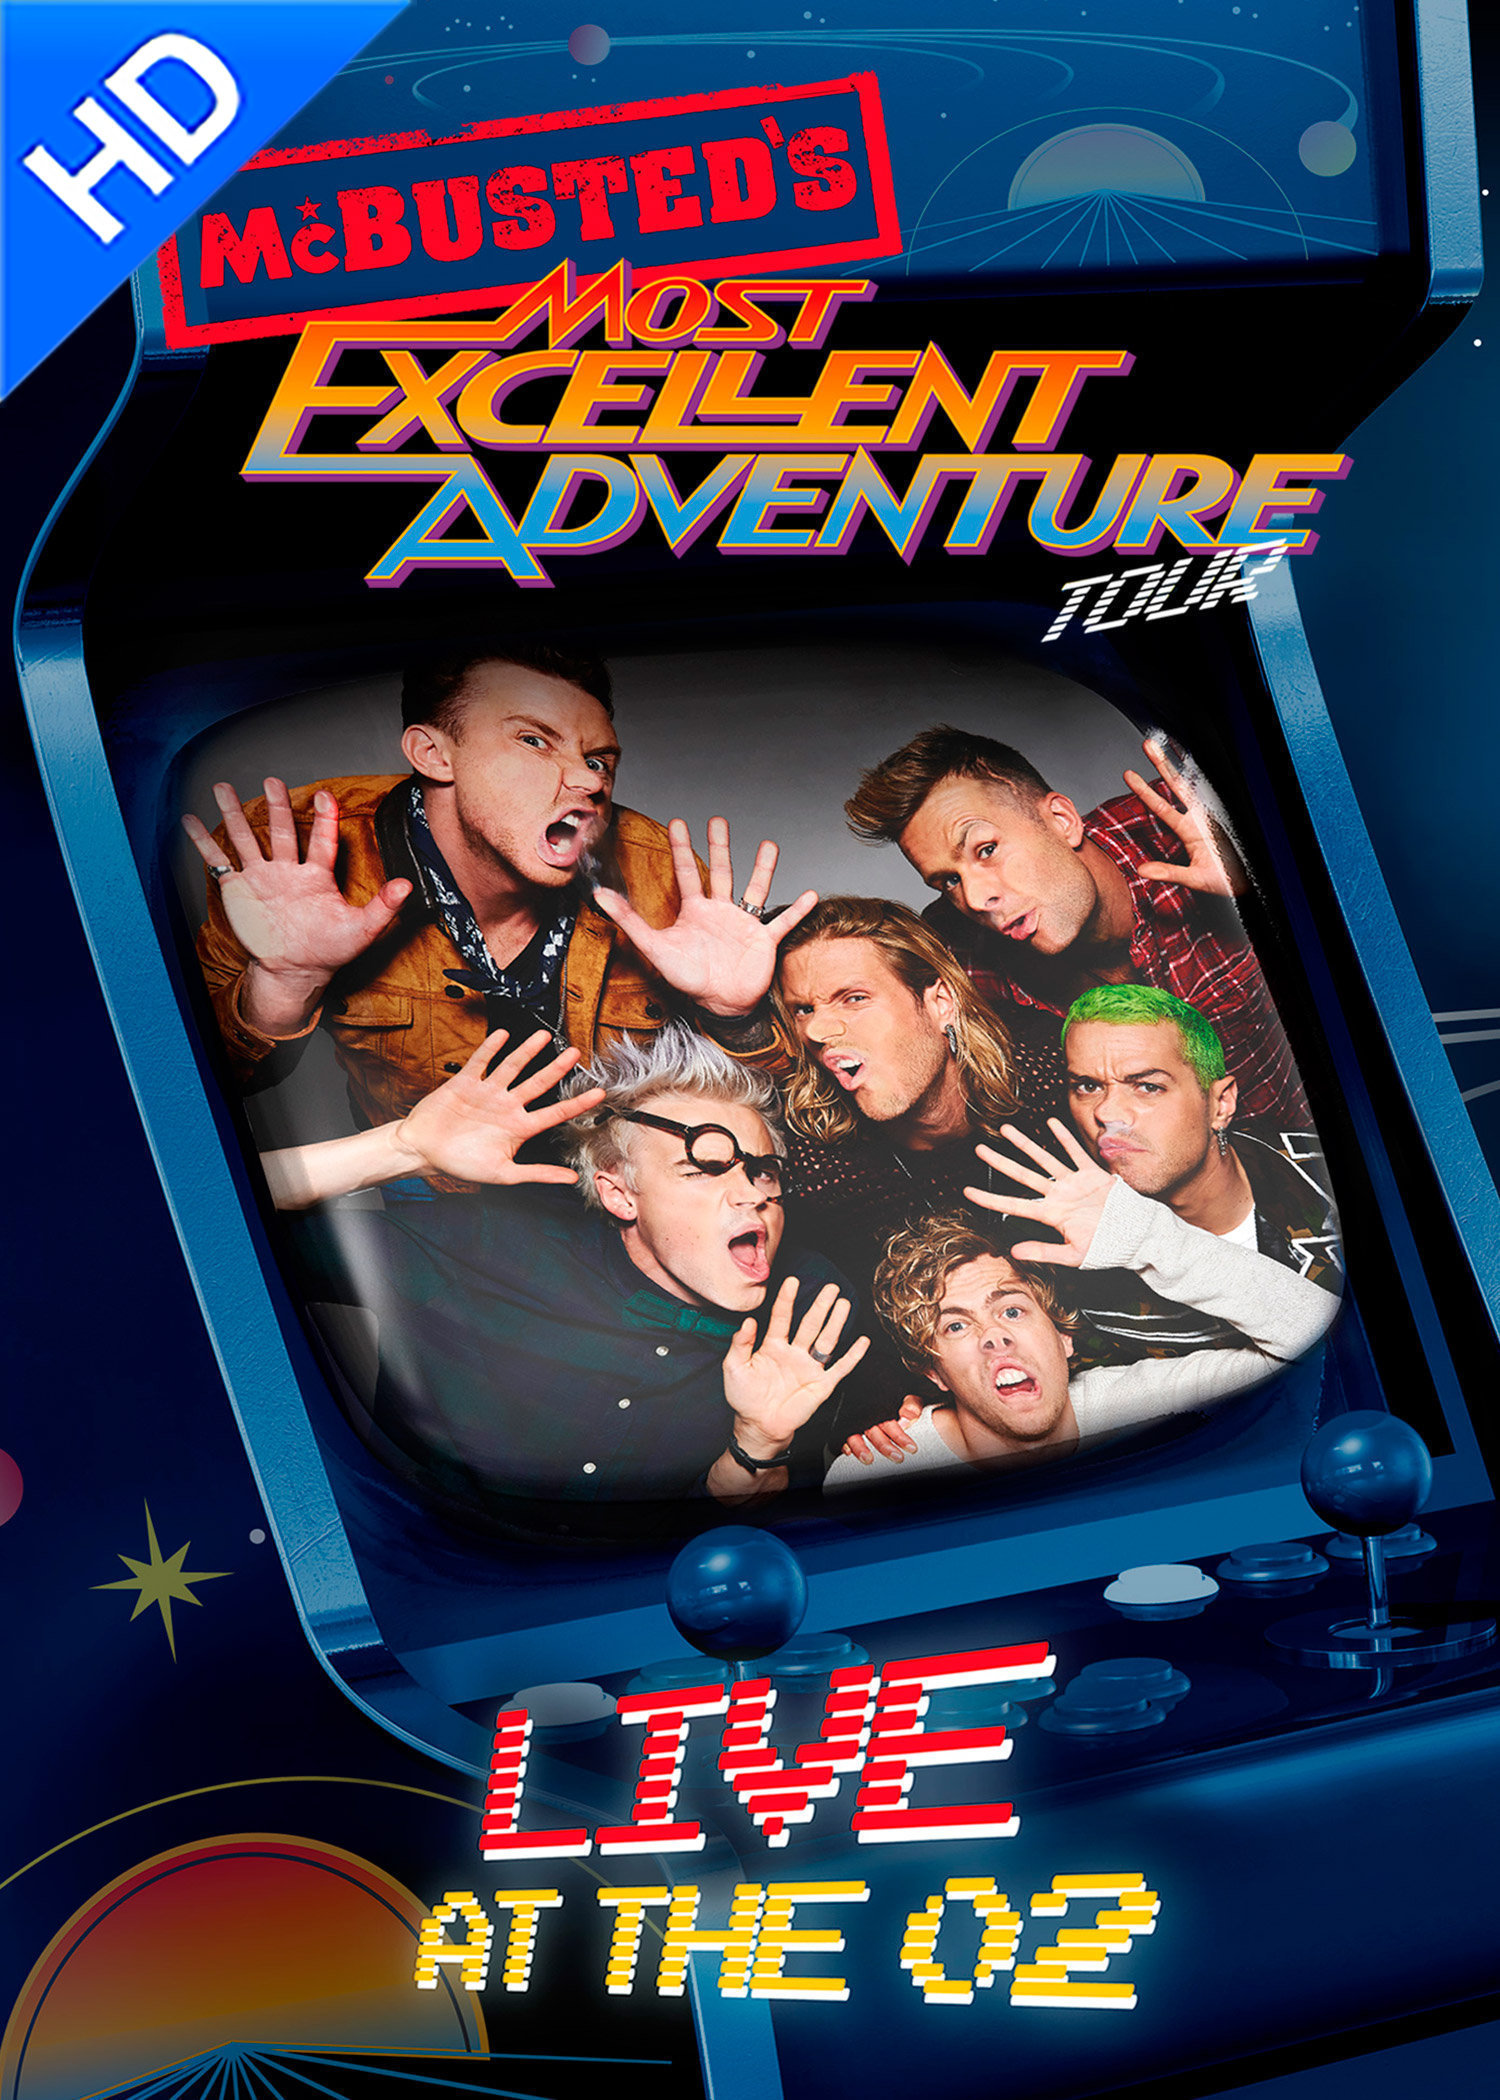 mcbusted-most-excellent-adventure-tour